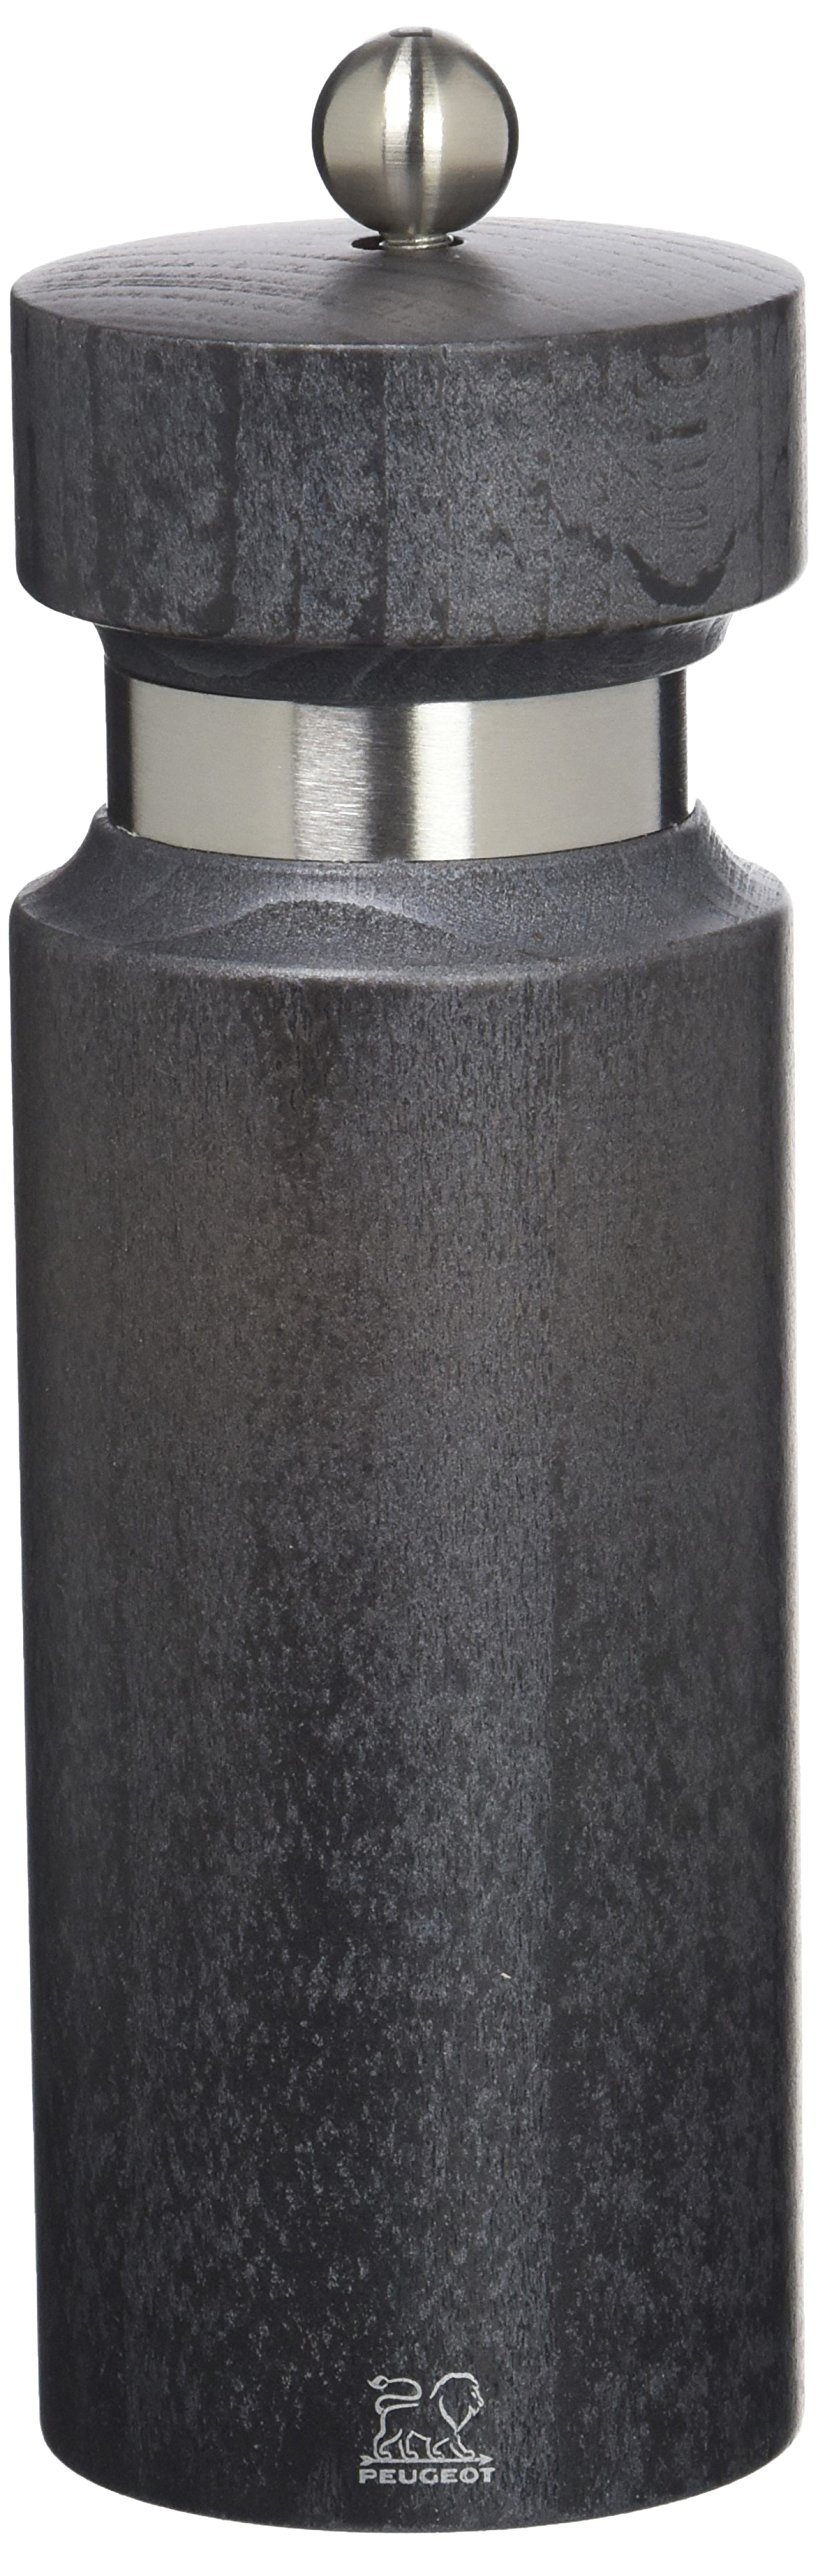 Peugeot 34504 Royan Pepper Mill, 7'', Gray by Peugeot